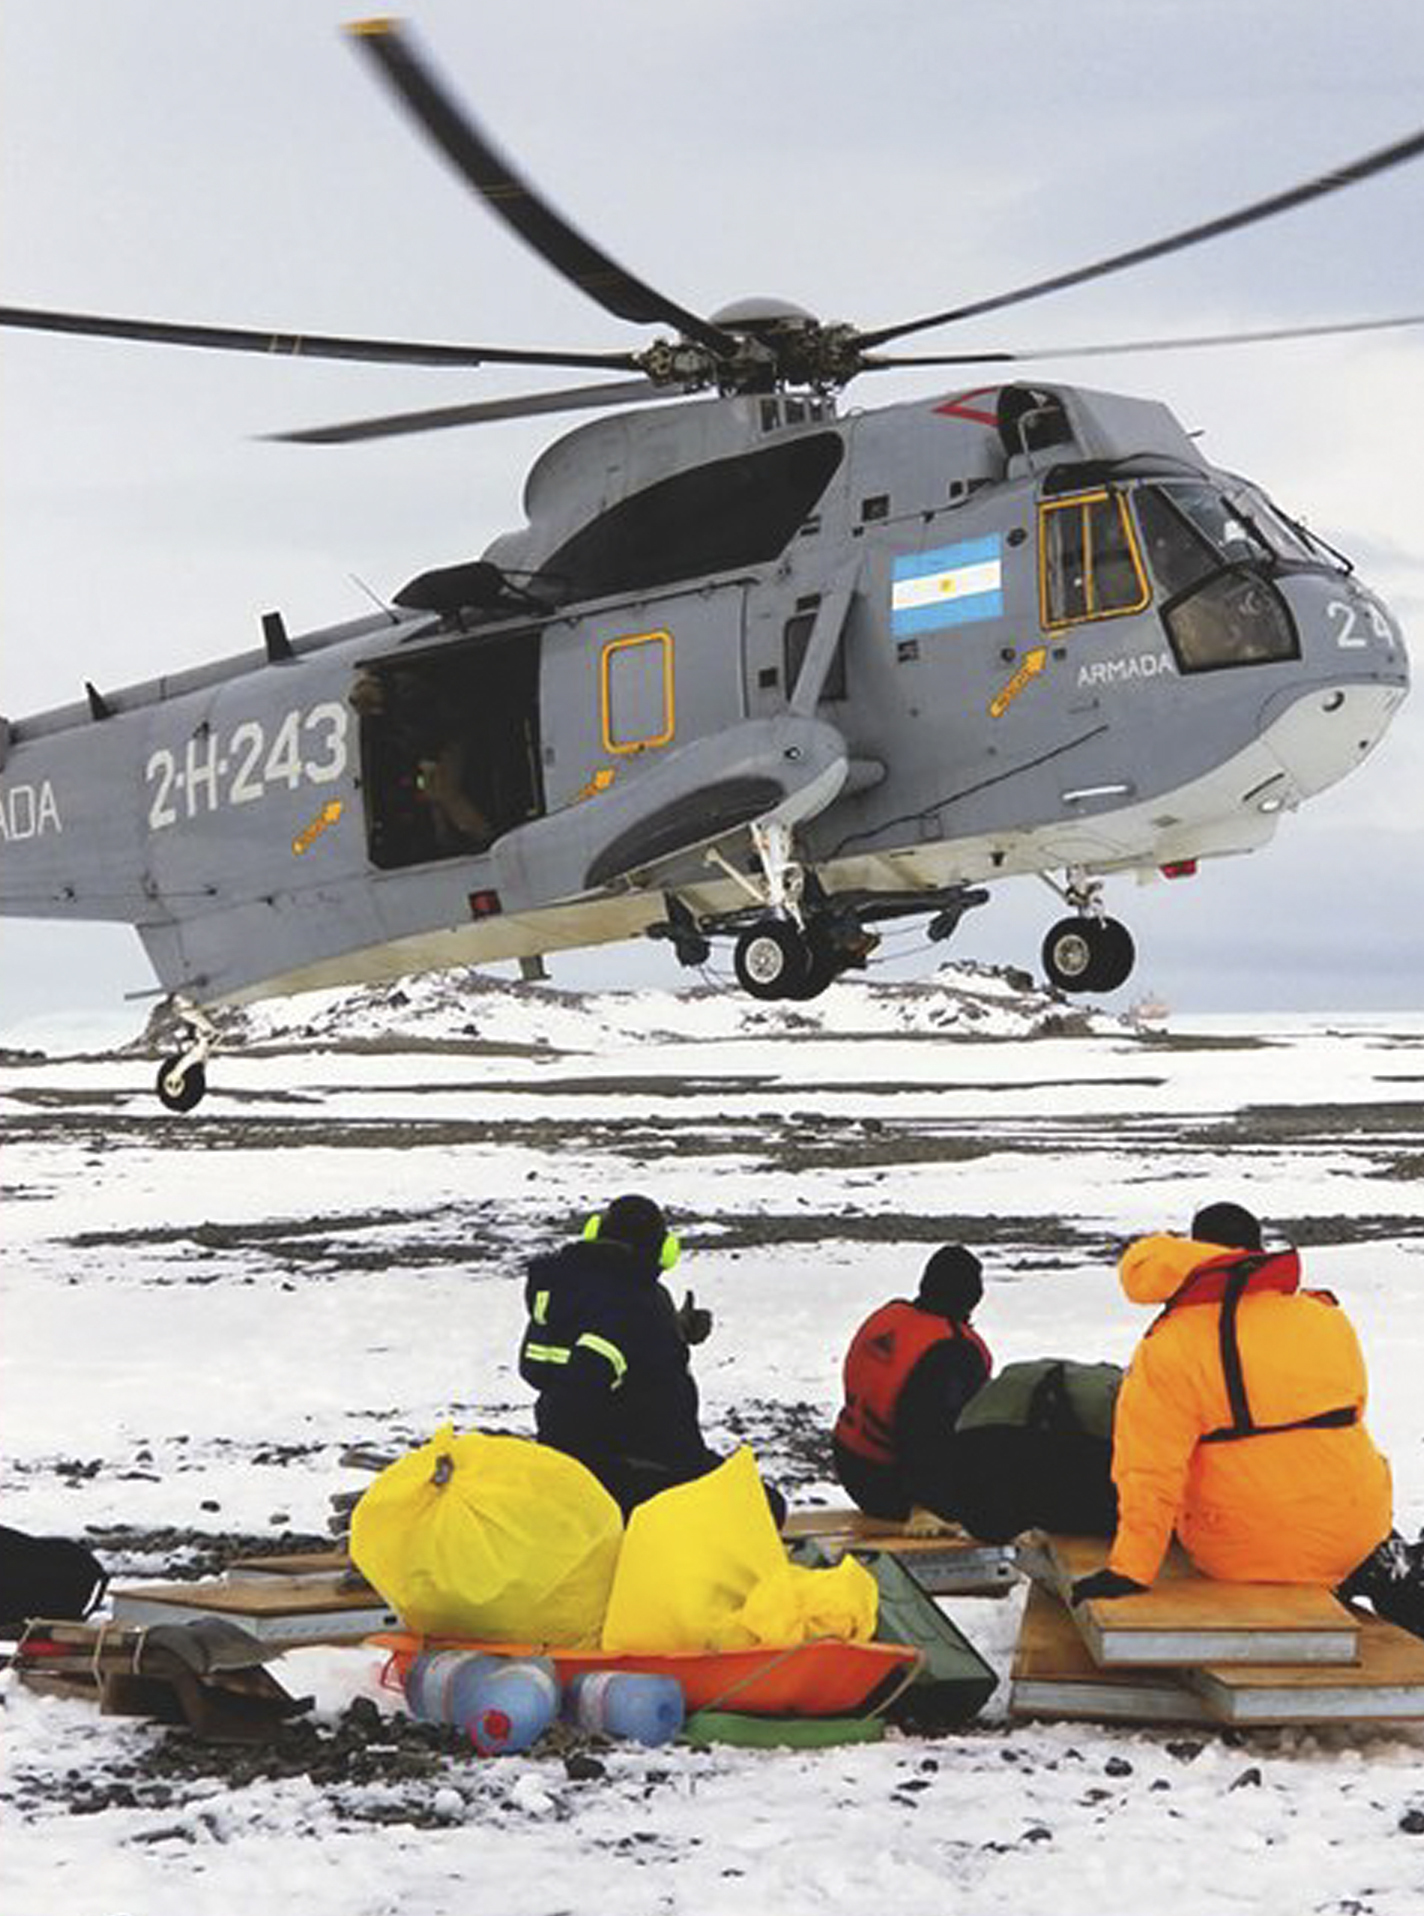 U.S. scientists stranded on Antarctica isle rescued by Argentina icebreaker